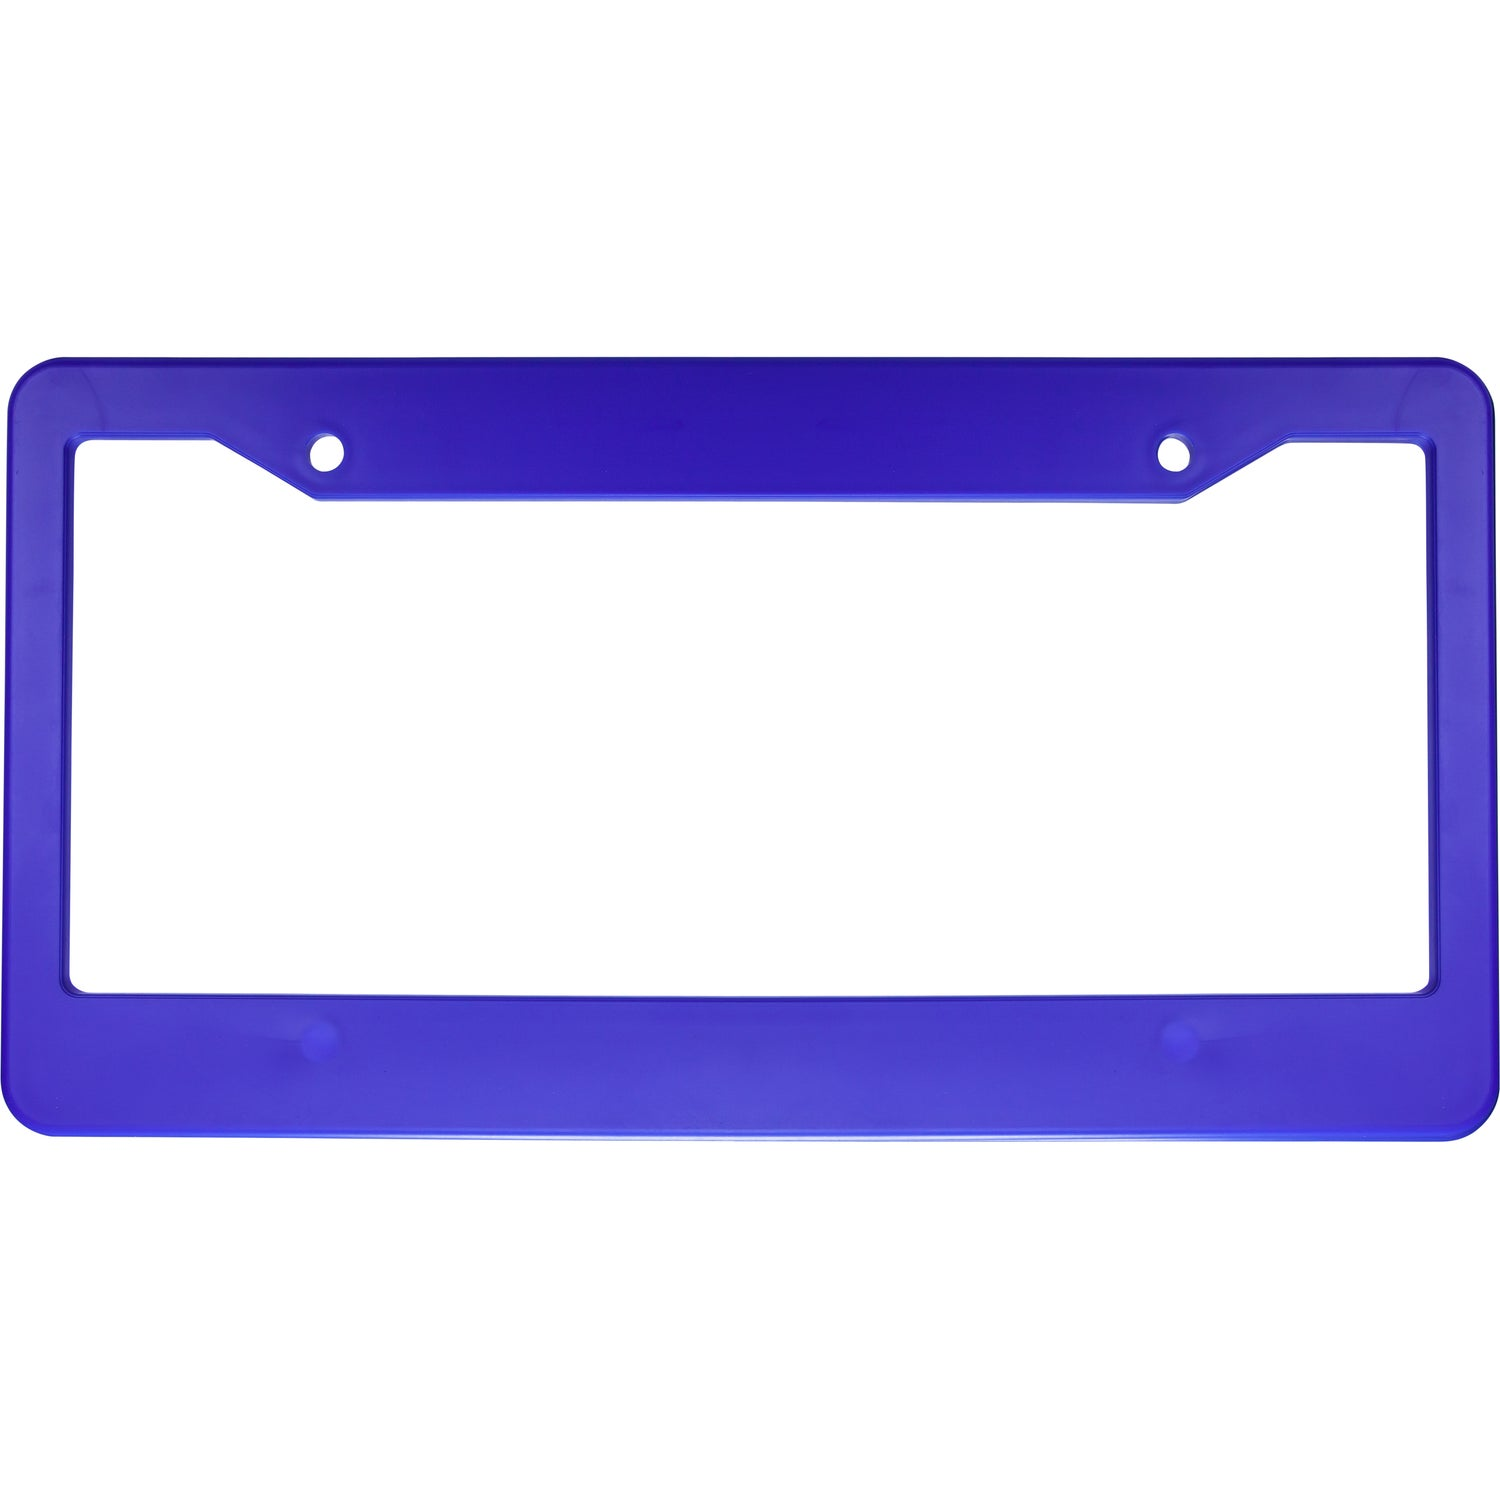 Promotional Auto License Plate Frames with Custom Logo for $0.708 Ea.